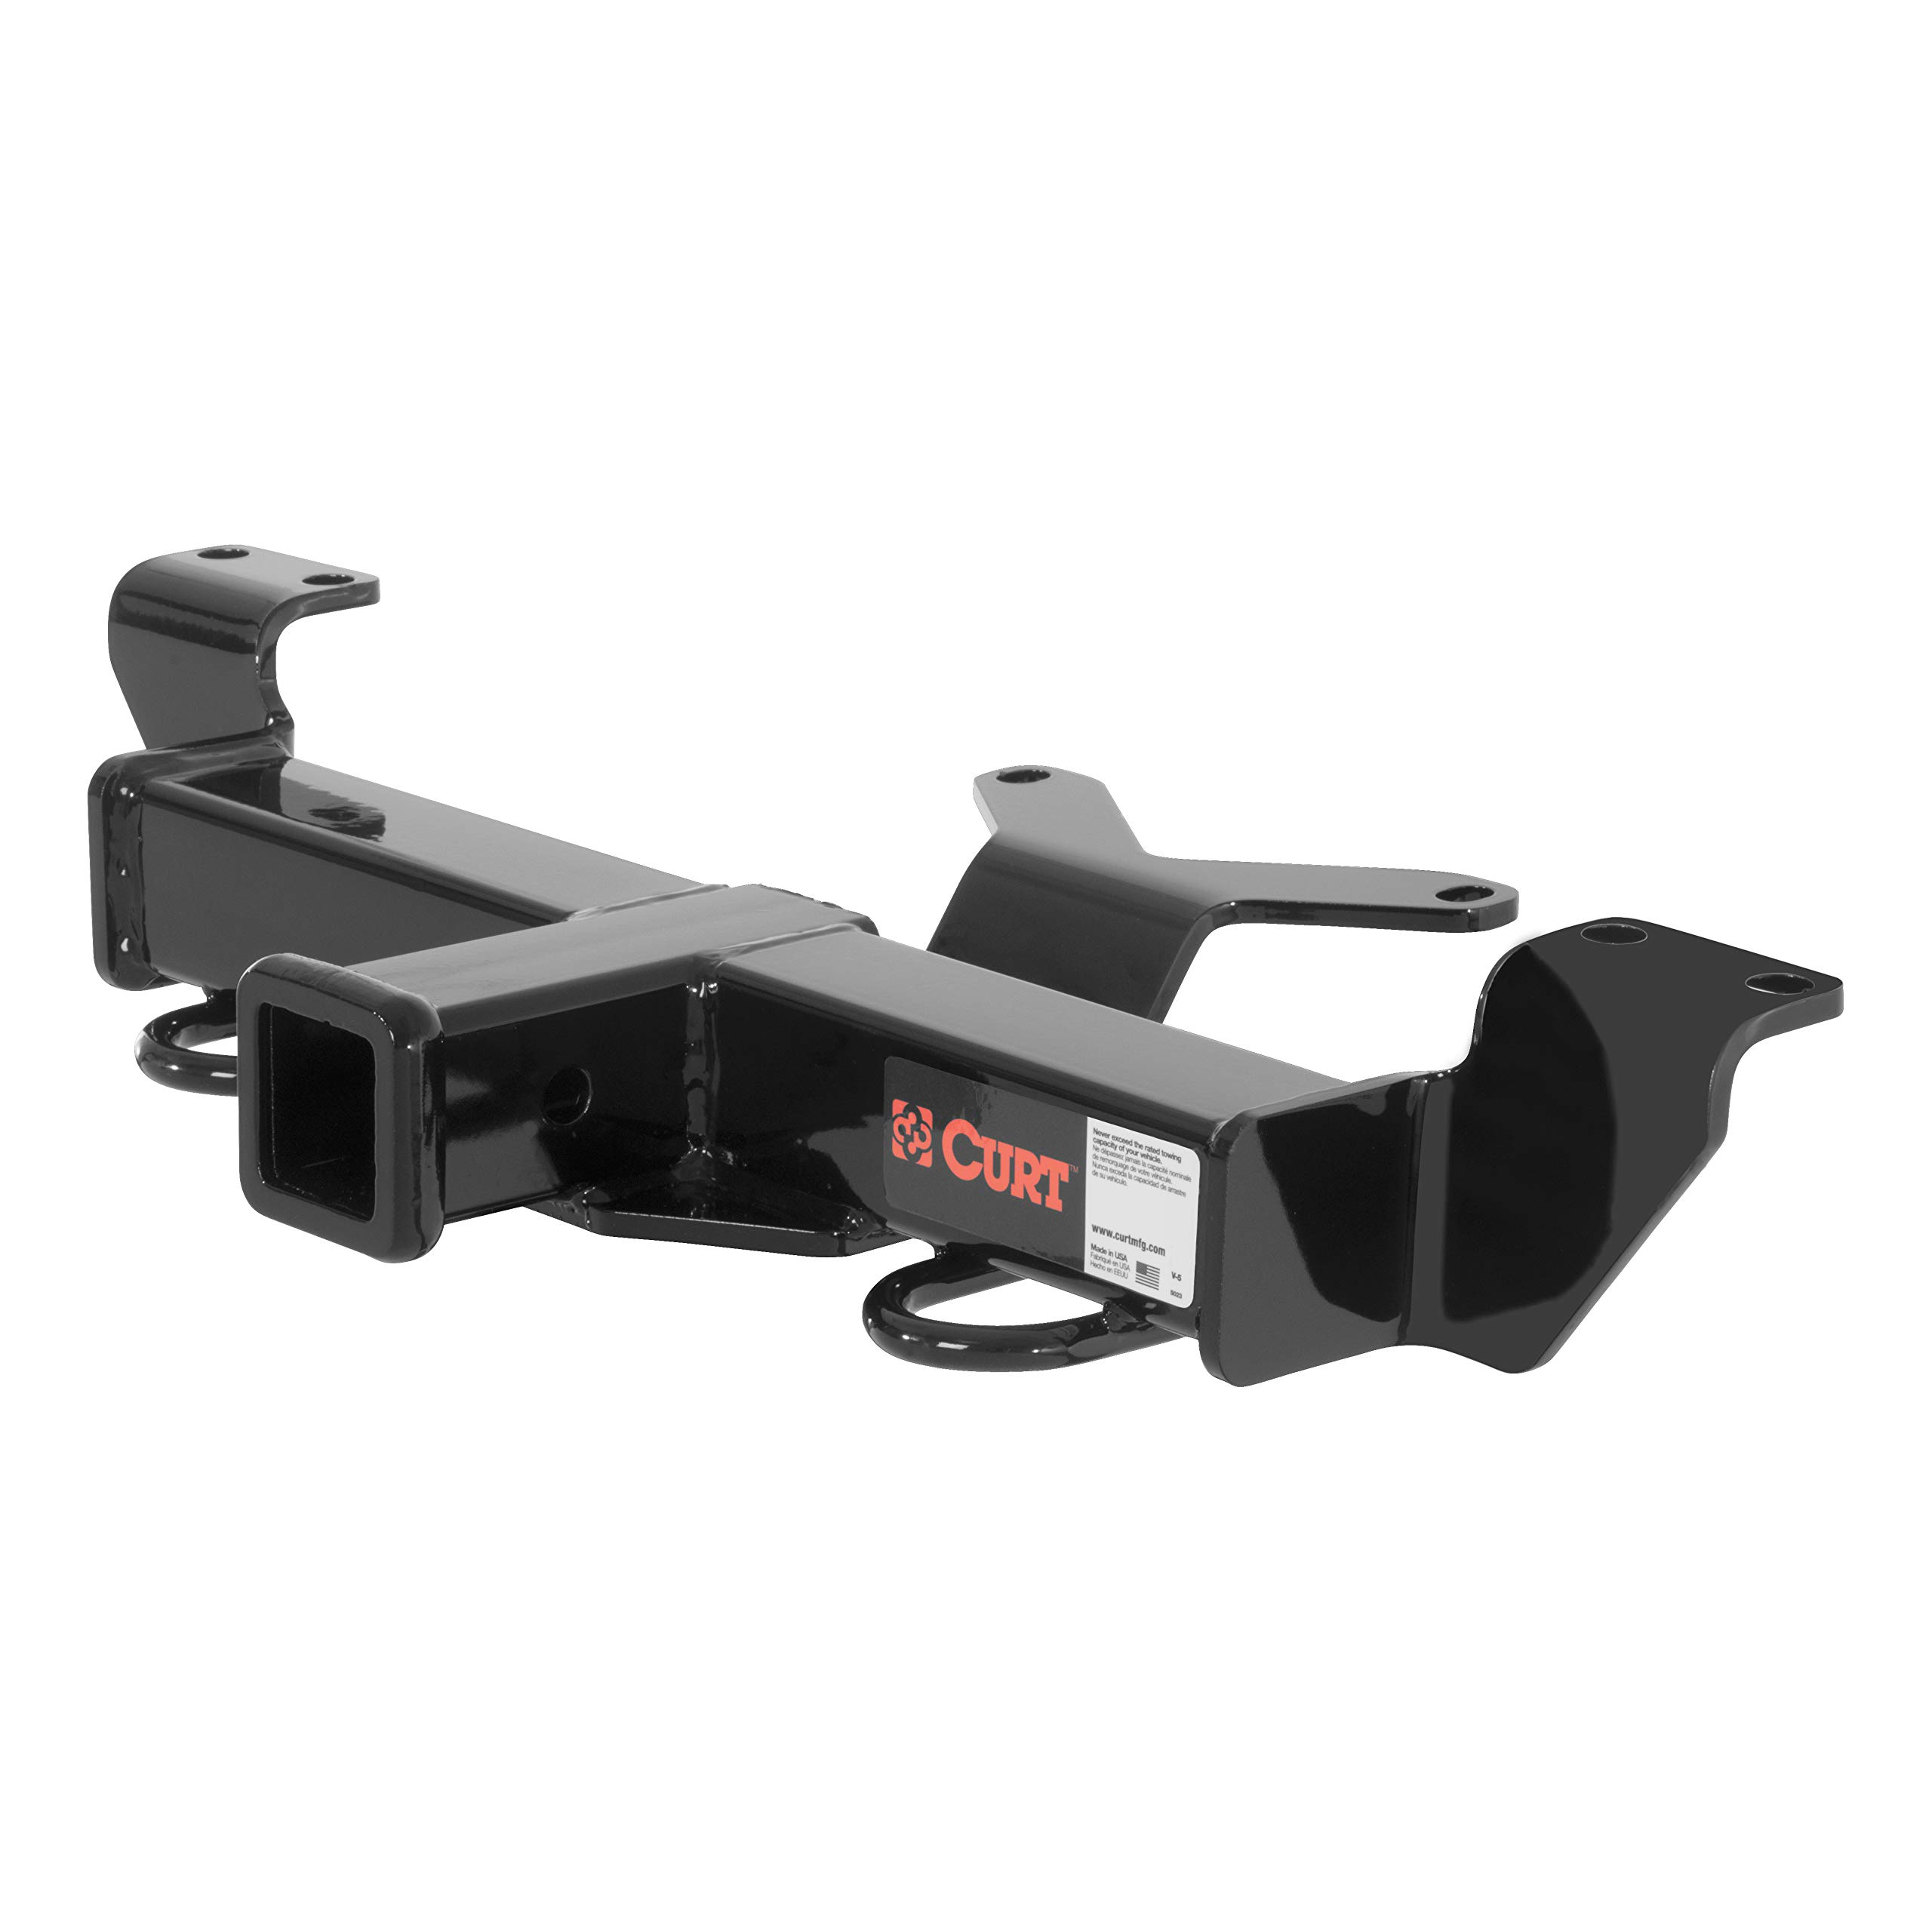 CURT 33328 Front Hitch with 2-Inch Receiver, Fits Select Honda Pilot, Ridgeline by CURT